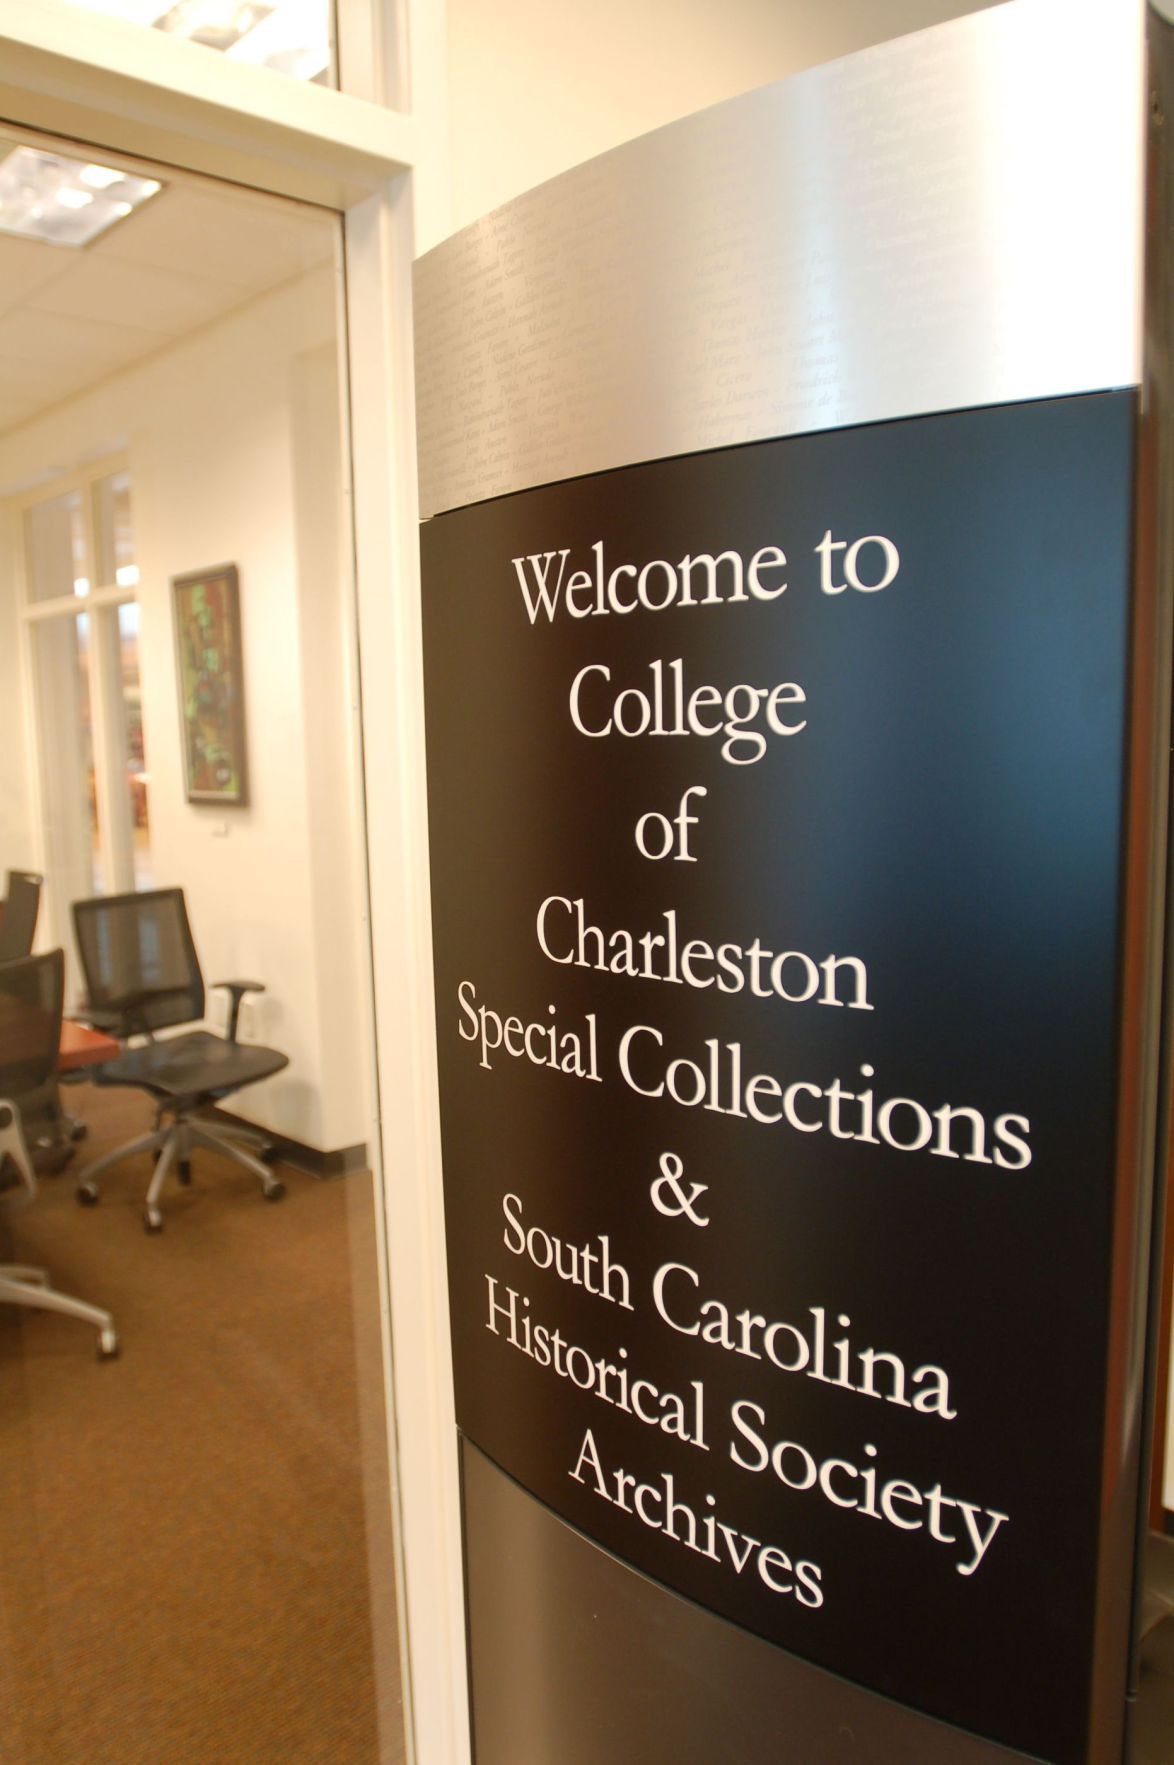 S.C. Historical Society completes its move to College of Charleston